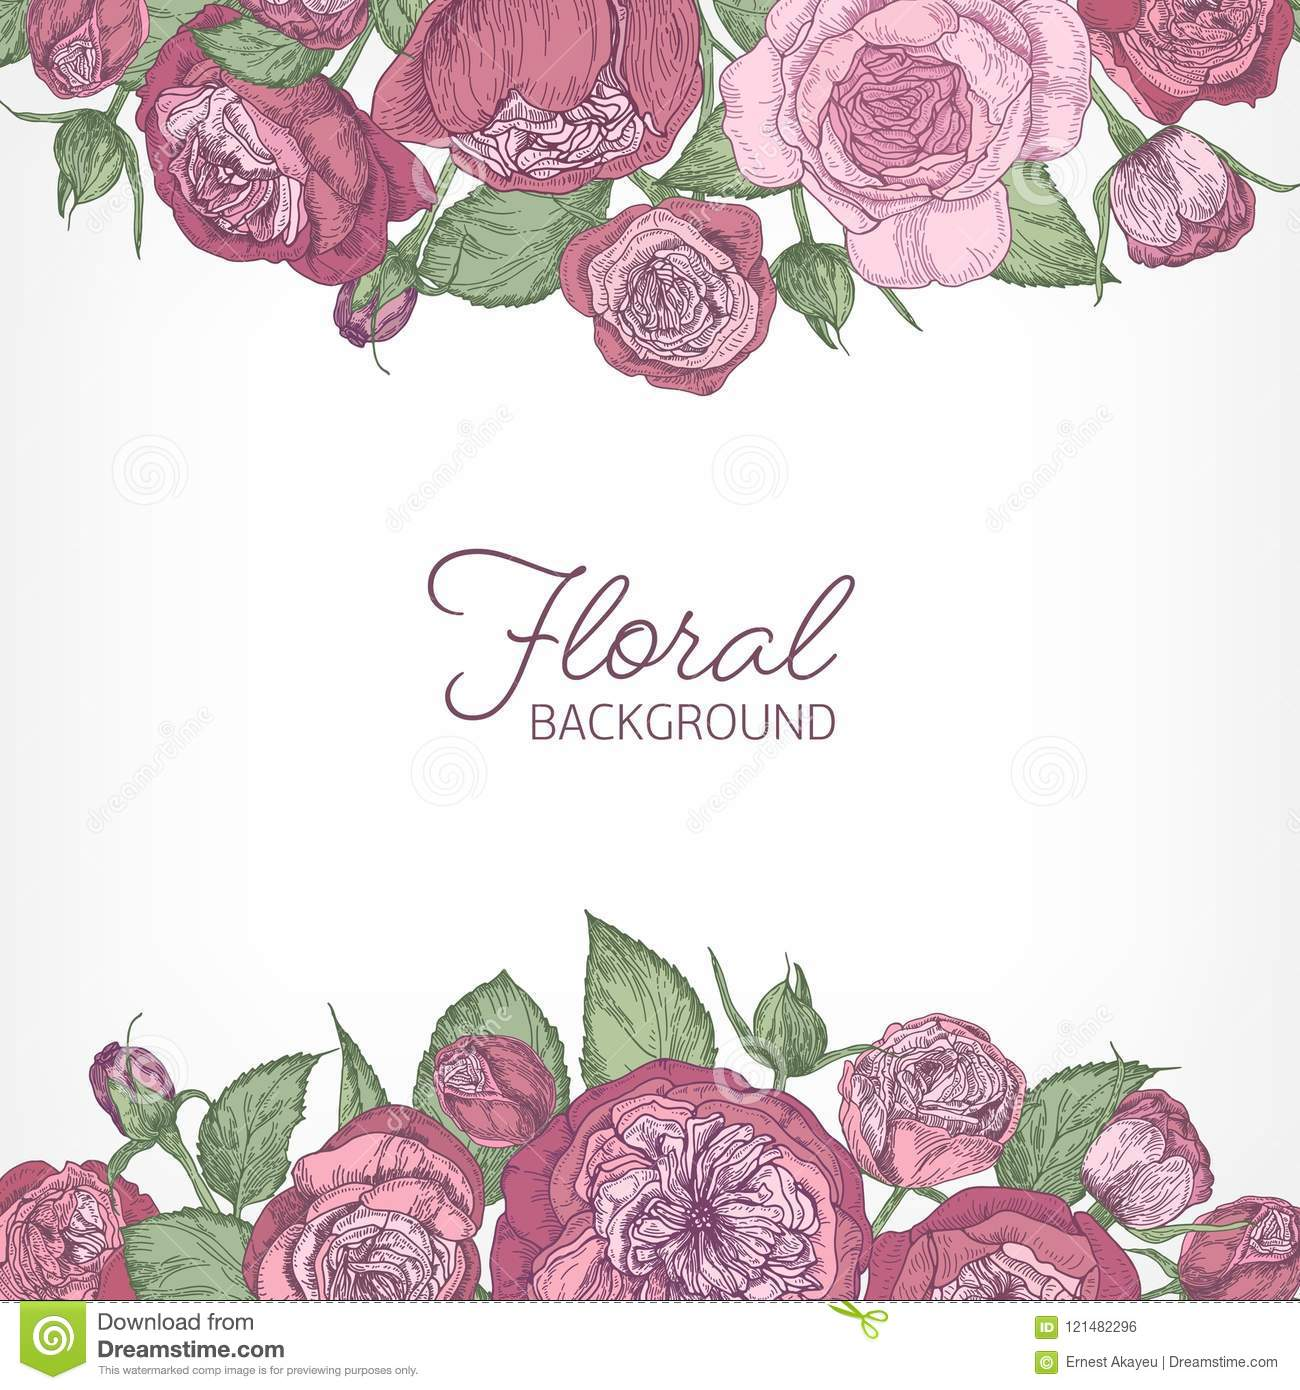 Square Romantic Floral Backdrop Decorated With Gorgeous Pink Austin